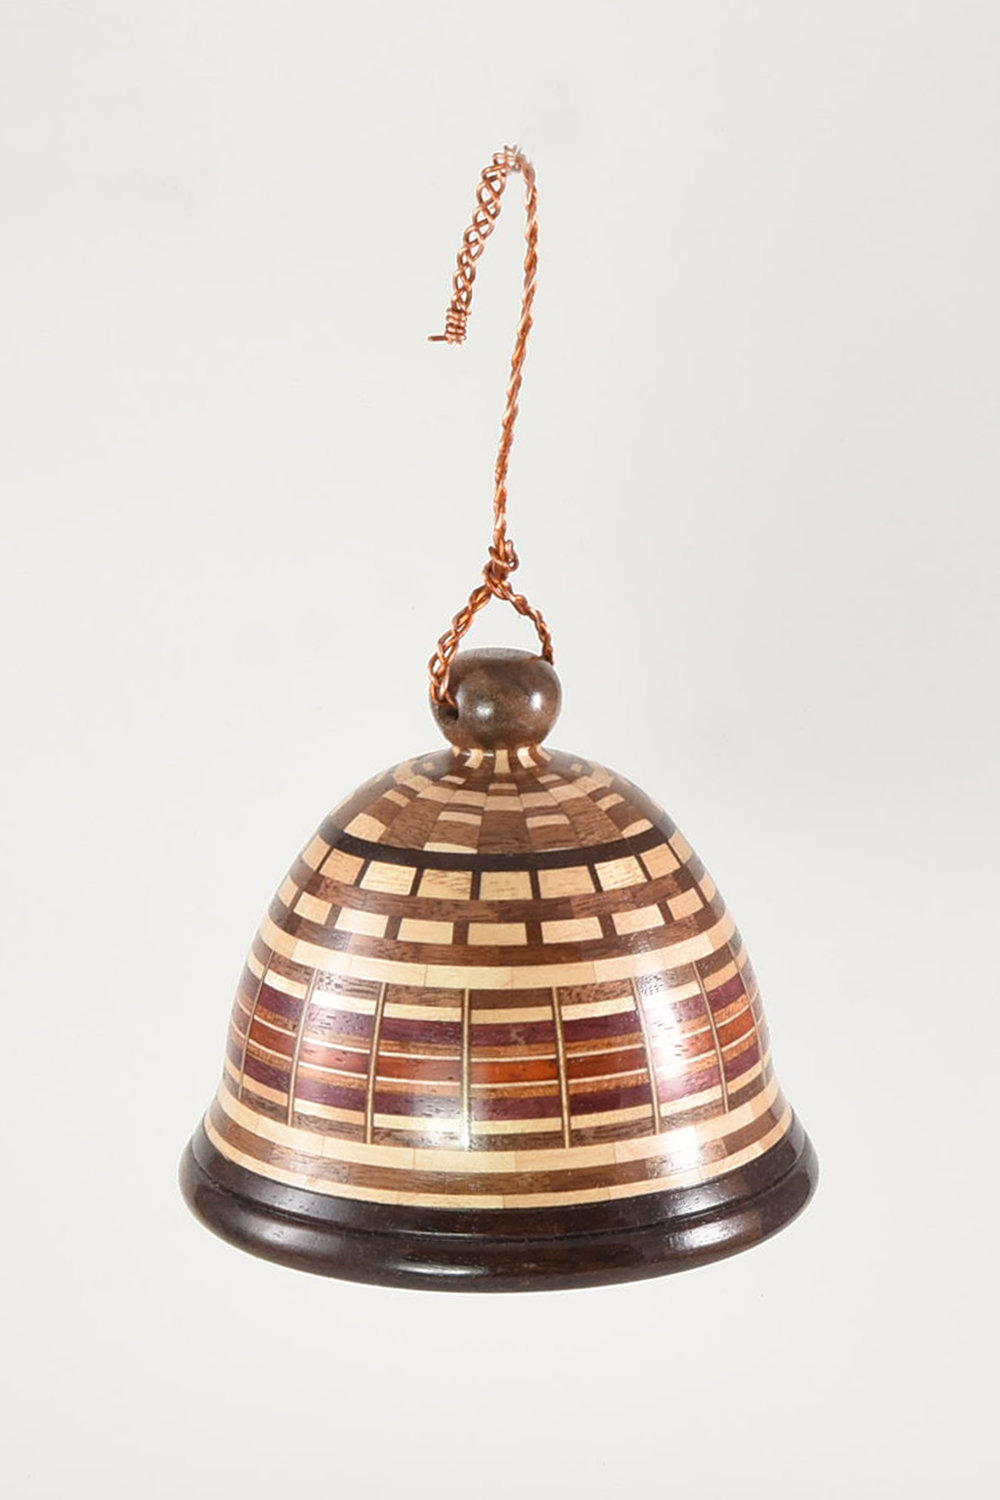 "The 4.0"" diameter segmented wood bell is made from walnut, maple, padauk and katalox woods.  There are 18 segments per layer and the bell consists of a total of 540 wood segments.  -John Manura"